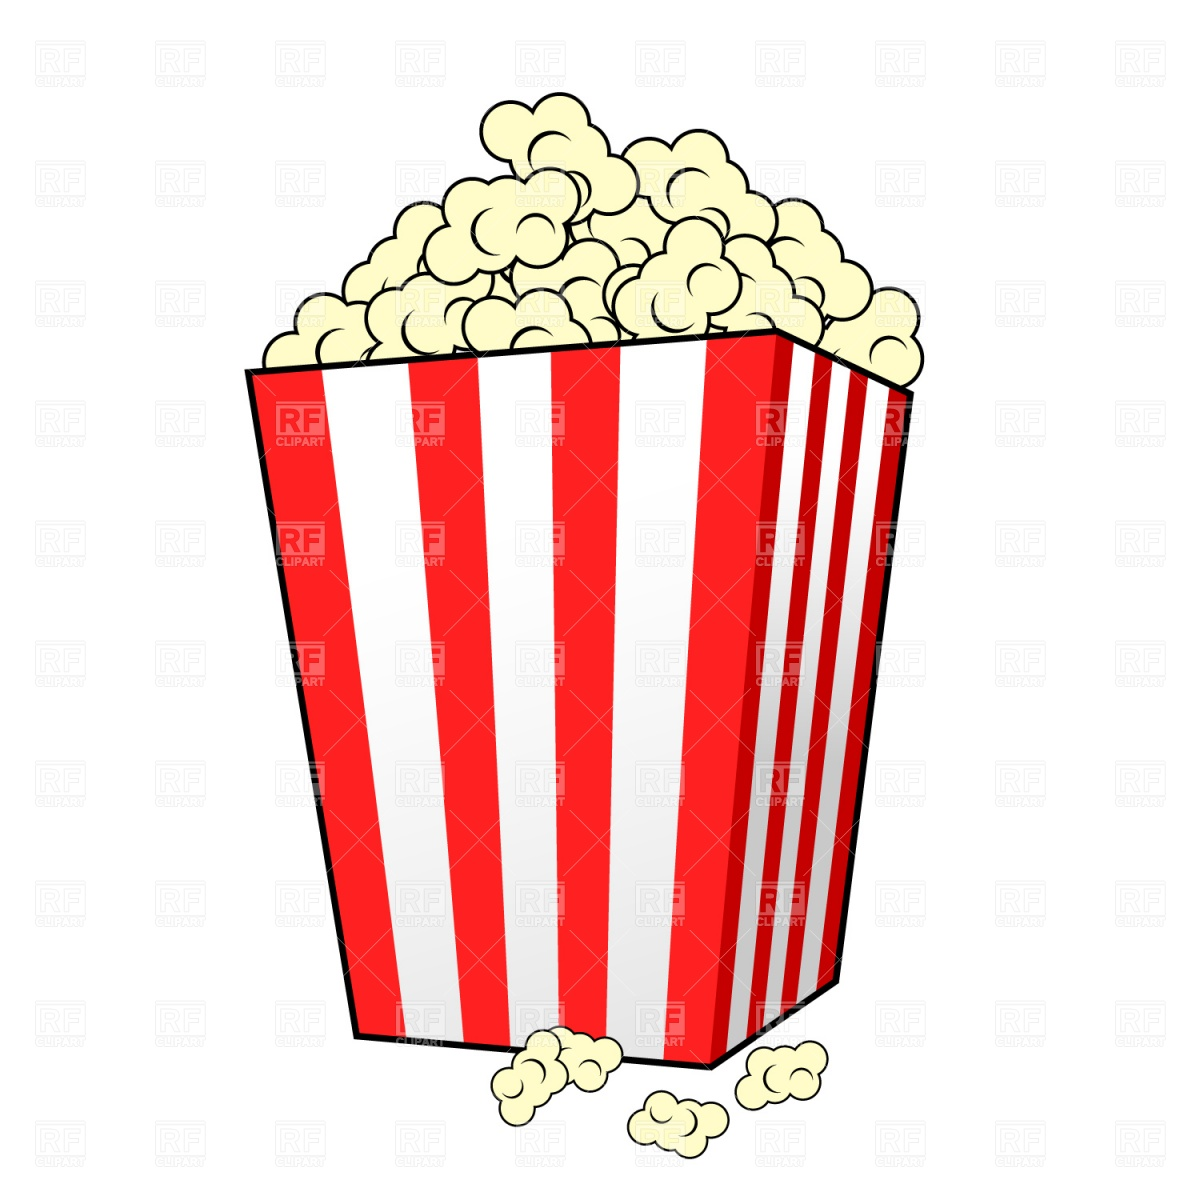 Popcorn 934 Food And Beverages Download Royalty Free Vector Clipart